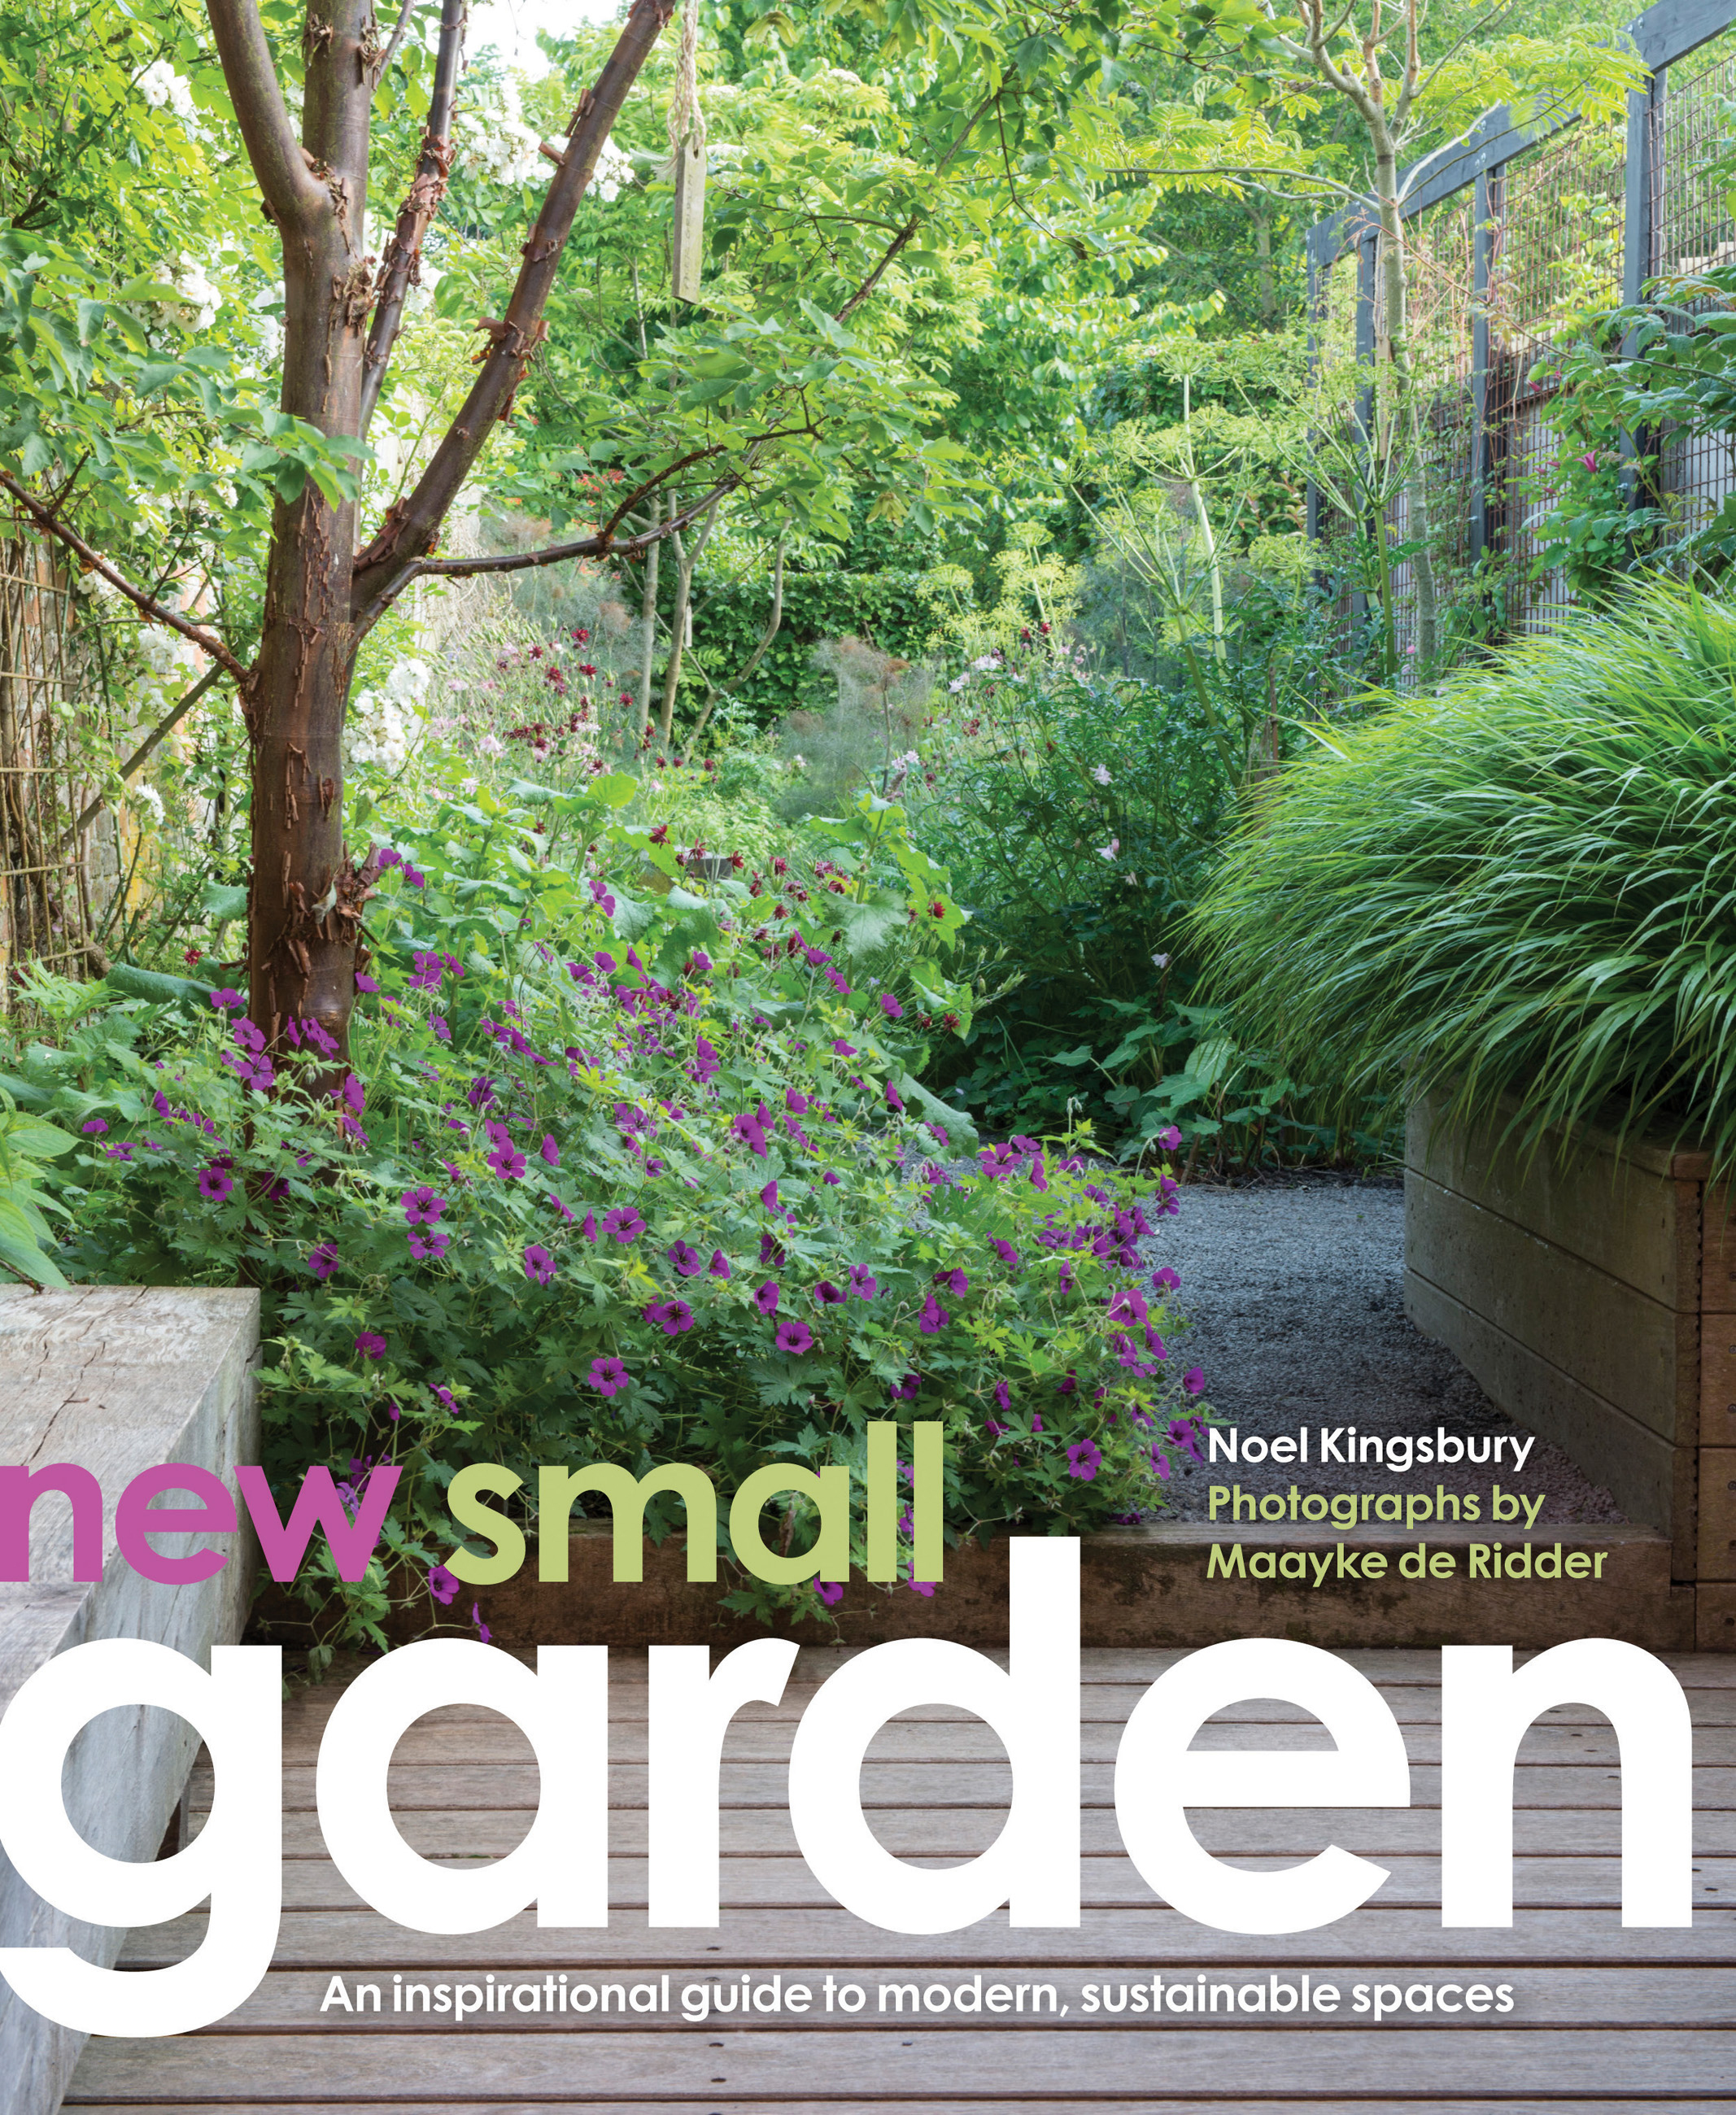 New small garden noel kingsbury and maayke de ridder for Kingsbury garden designs